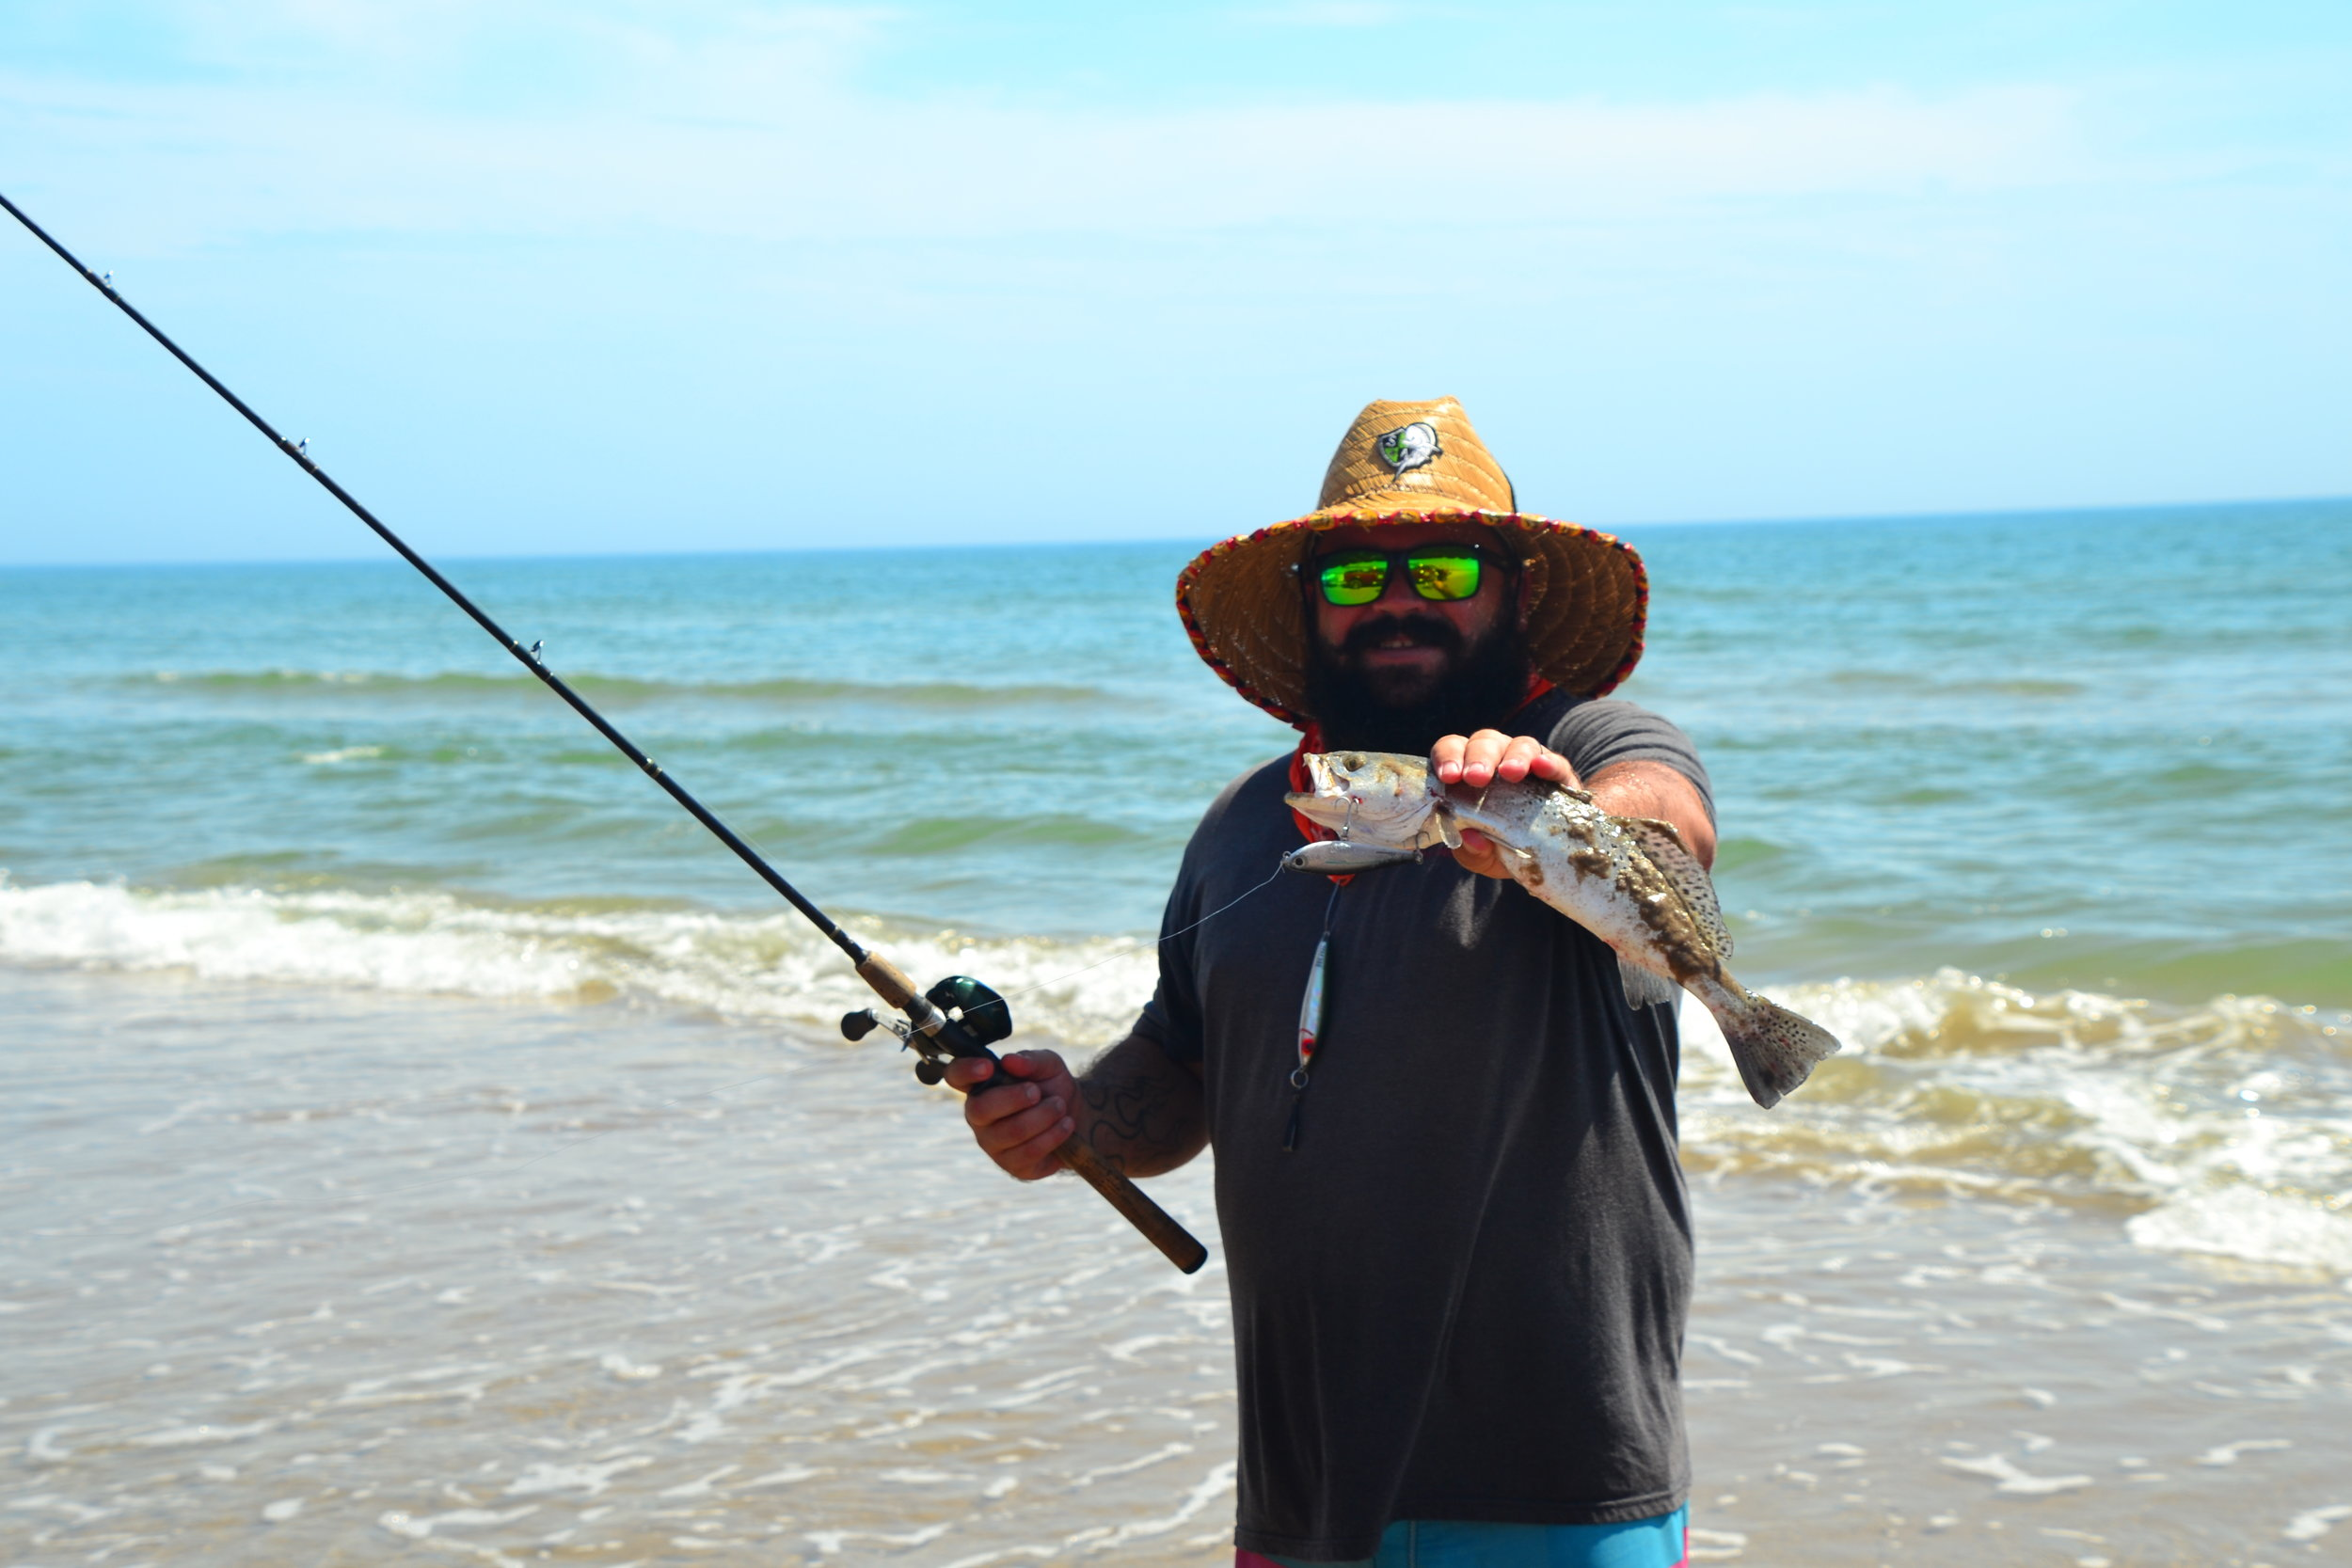 August surf trout on lure!